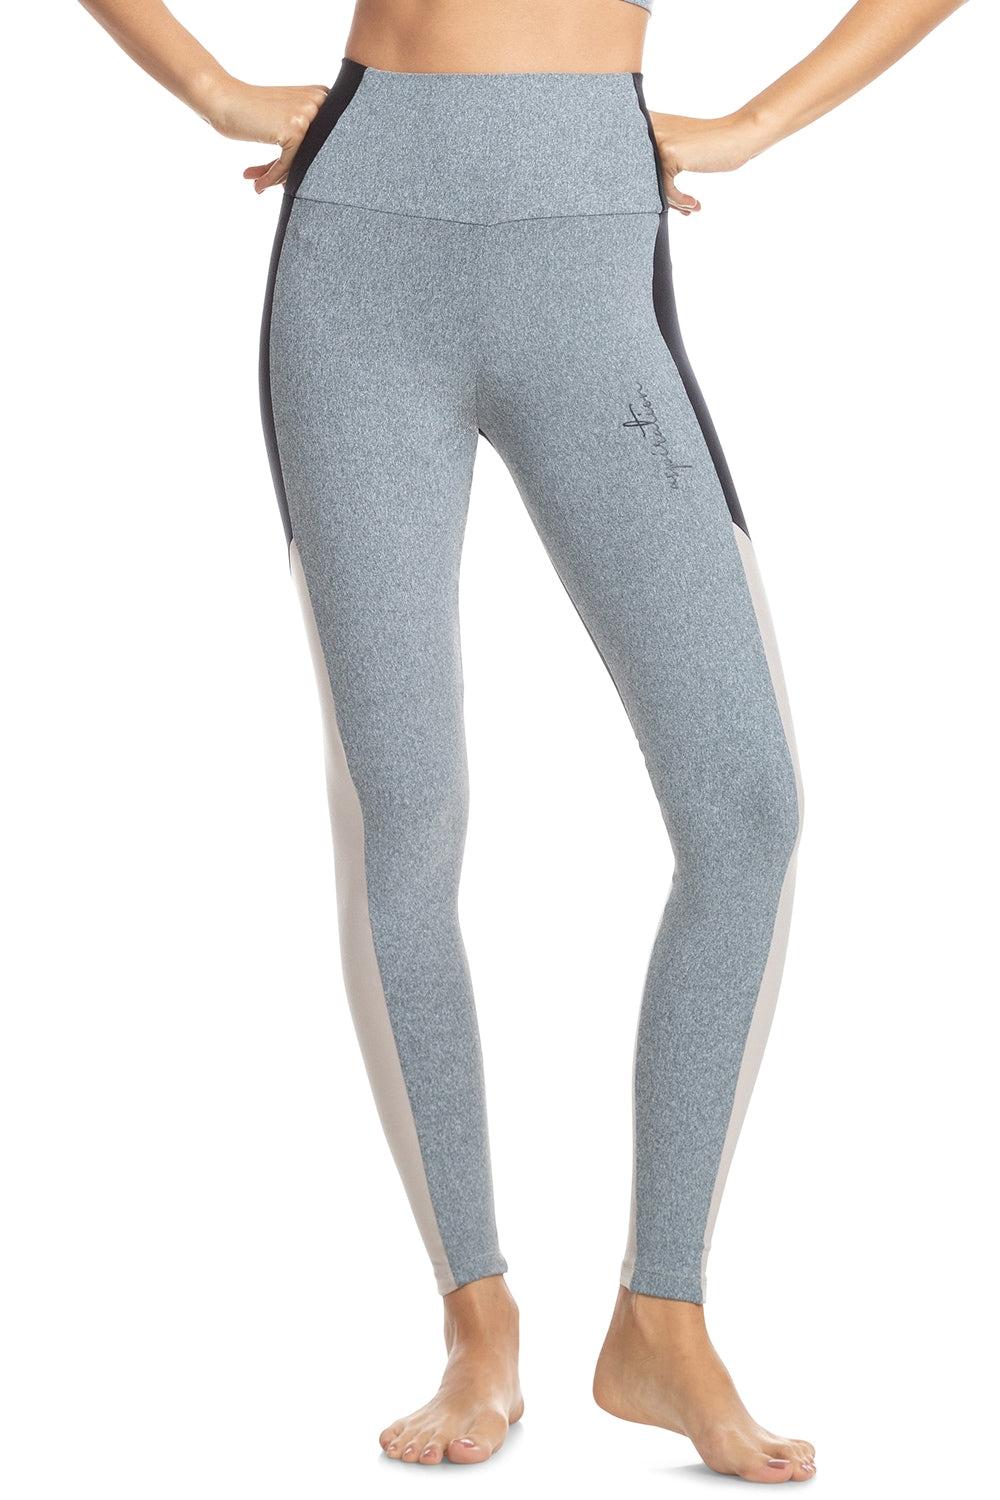 Spirit Aspiration Legging 1